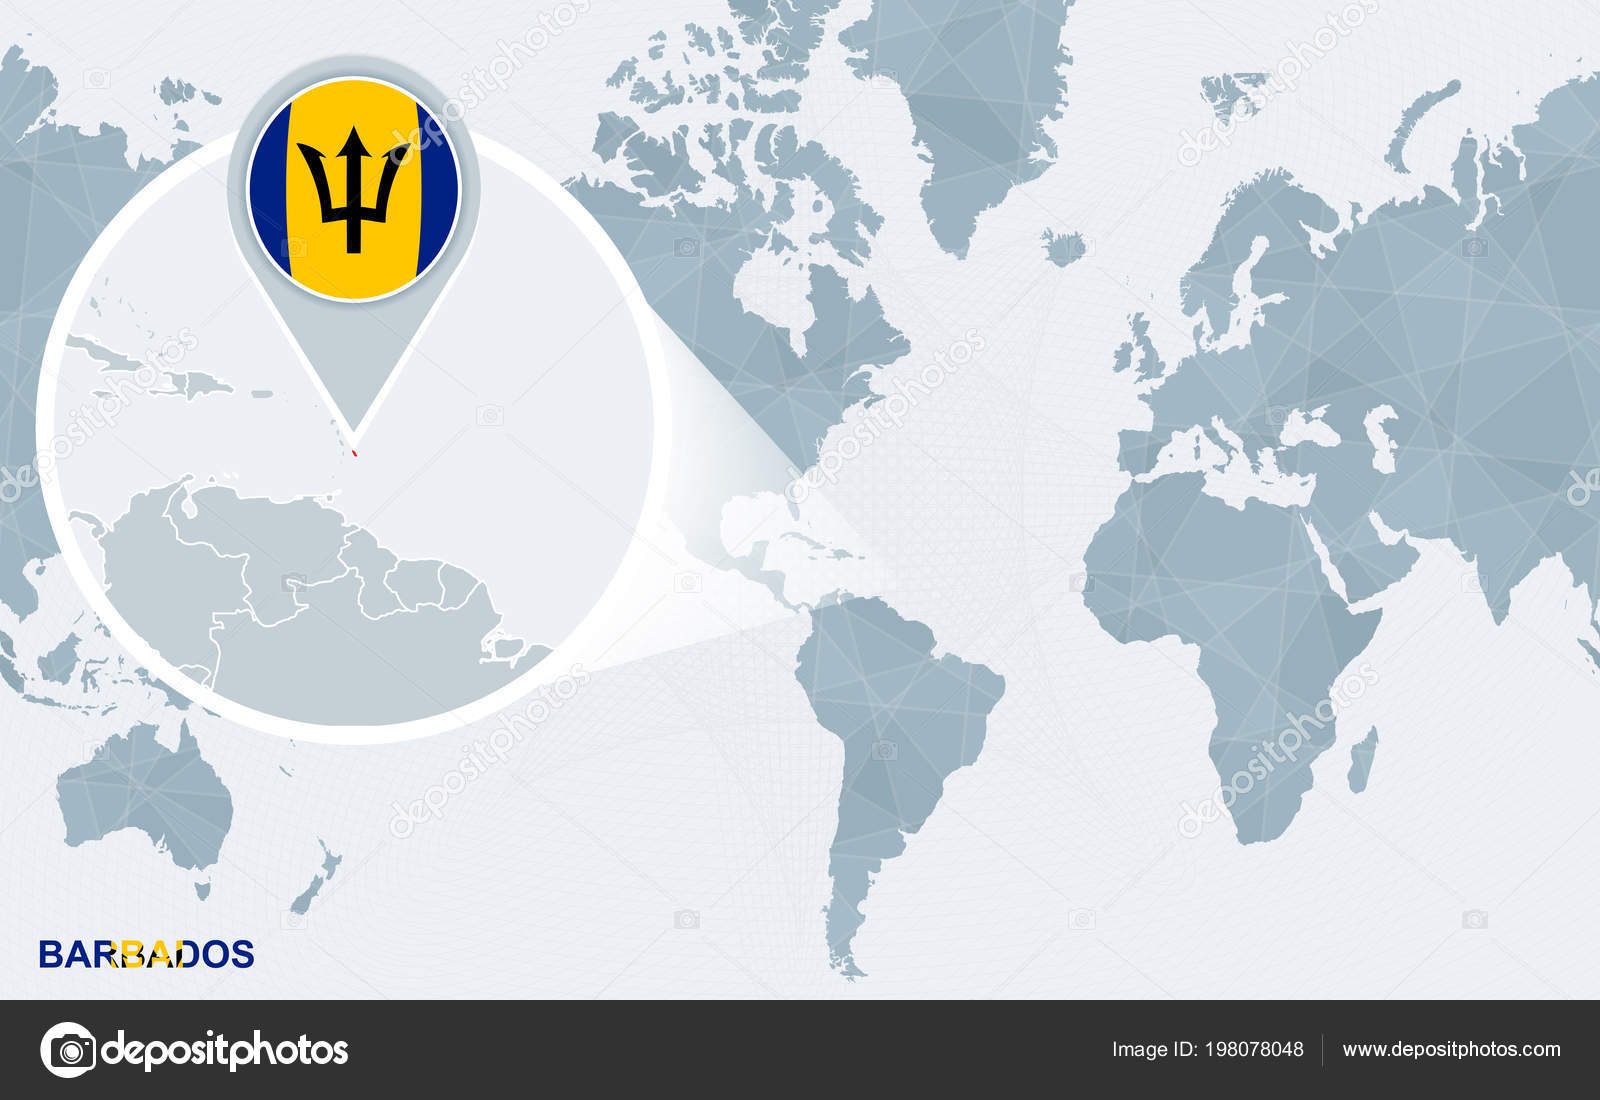 Picture of: World Map Centered America Magnified Barbados Blue Flag Map Barbados Stock Vector C Boldg 198078048